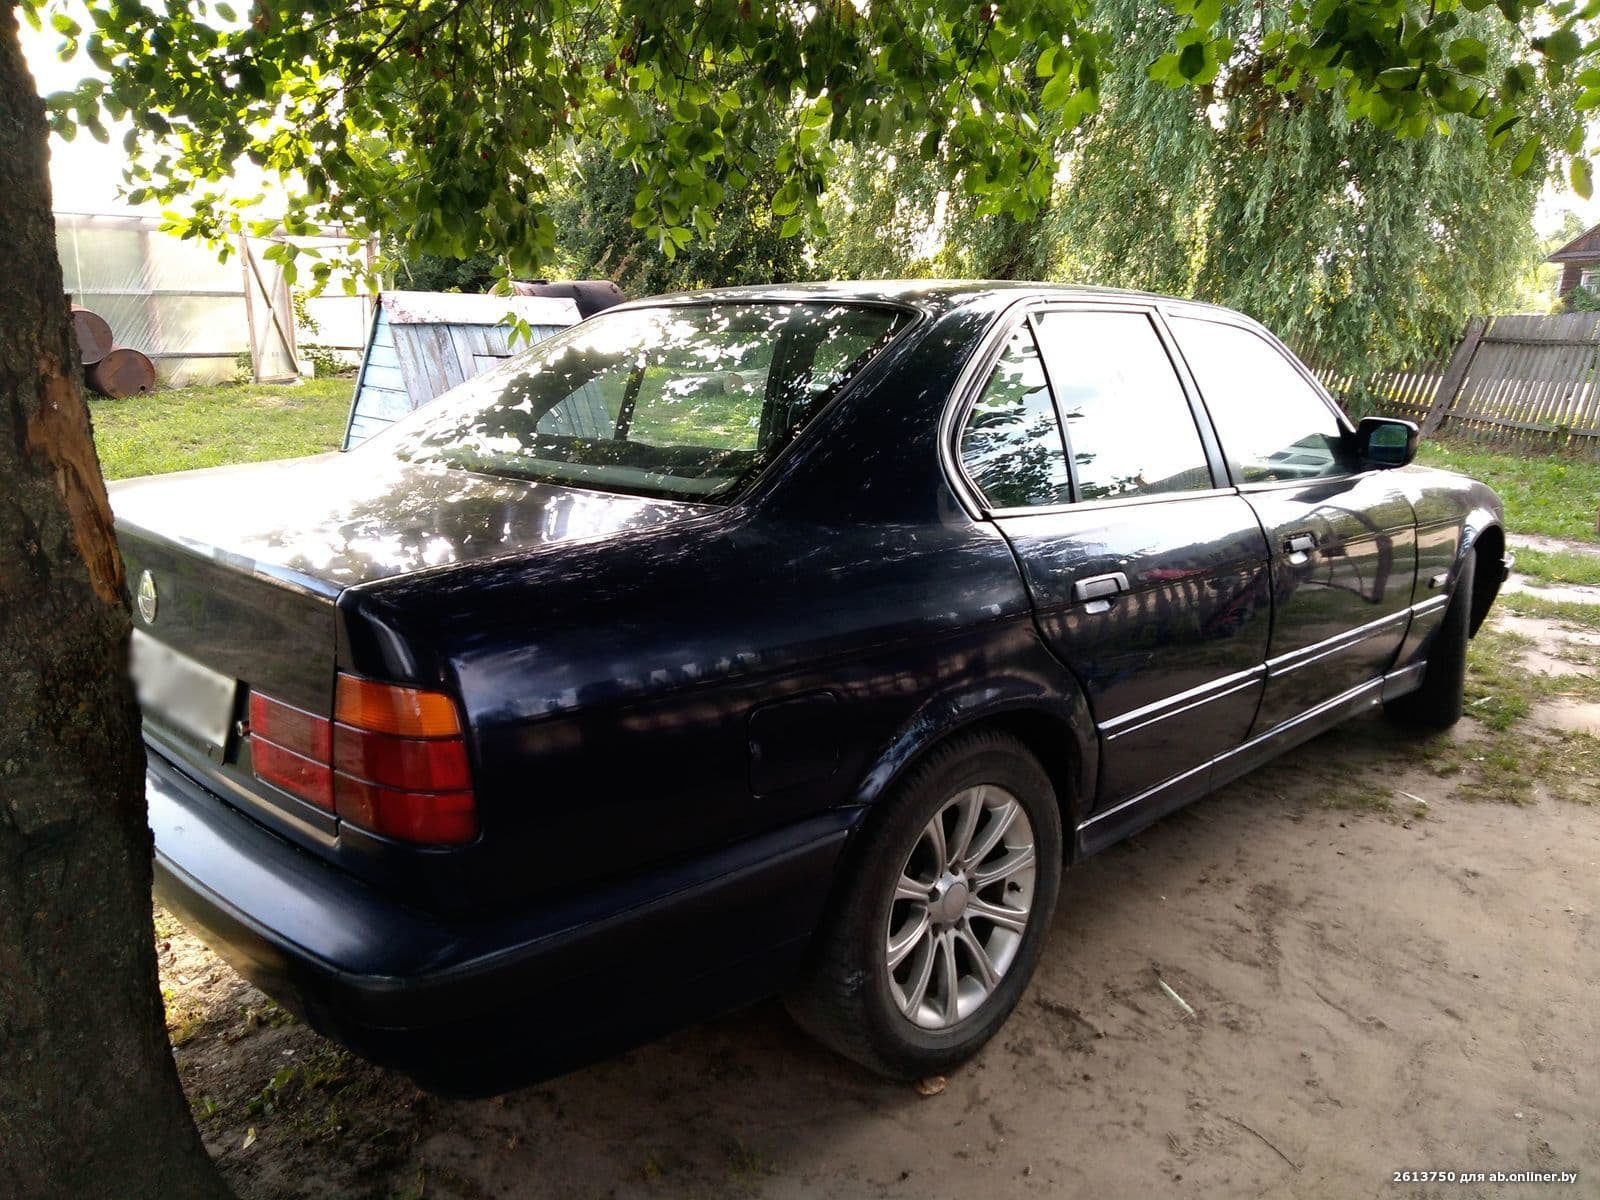 BMW 520 е34 2.0 м50 91год